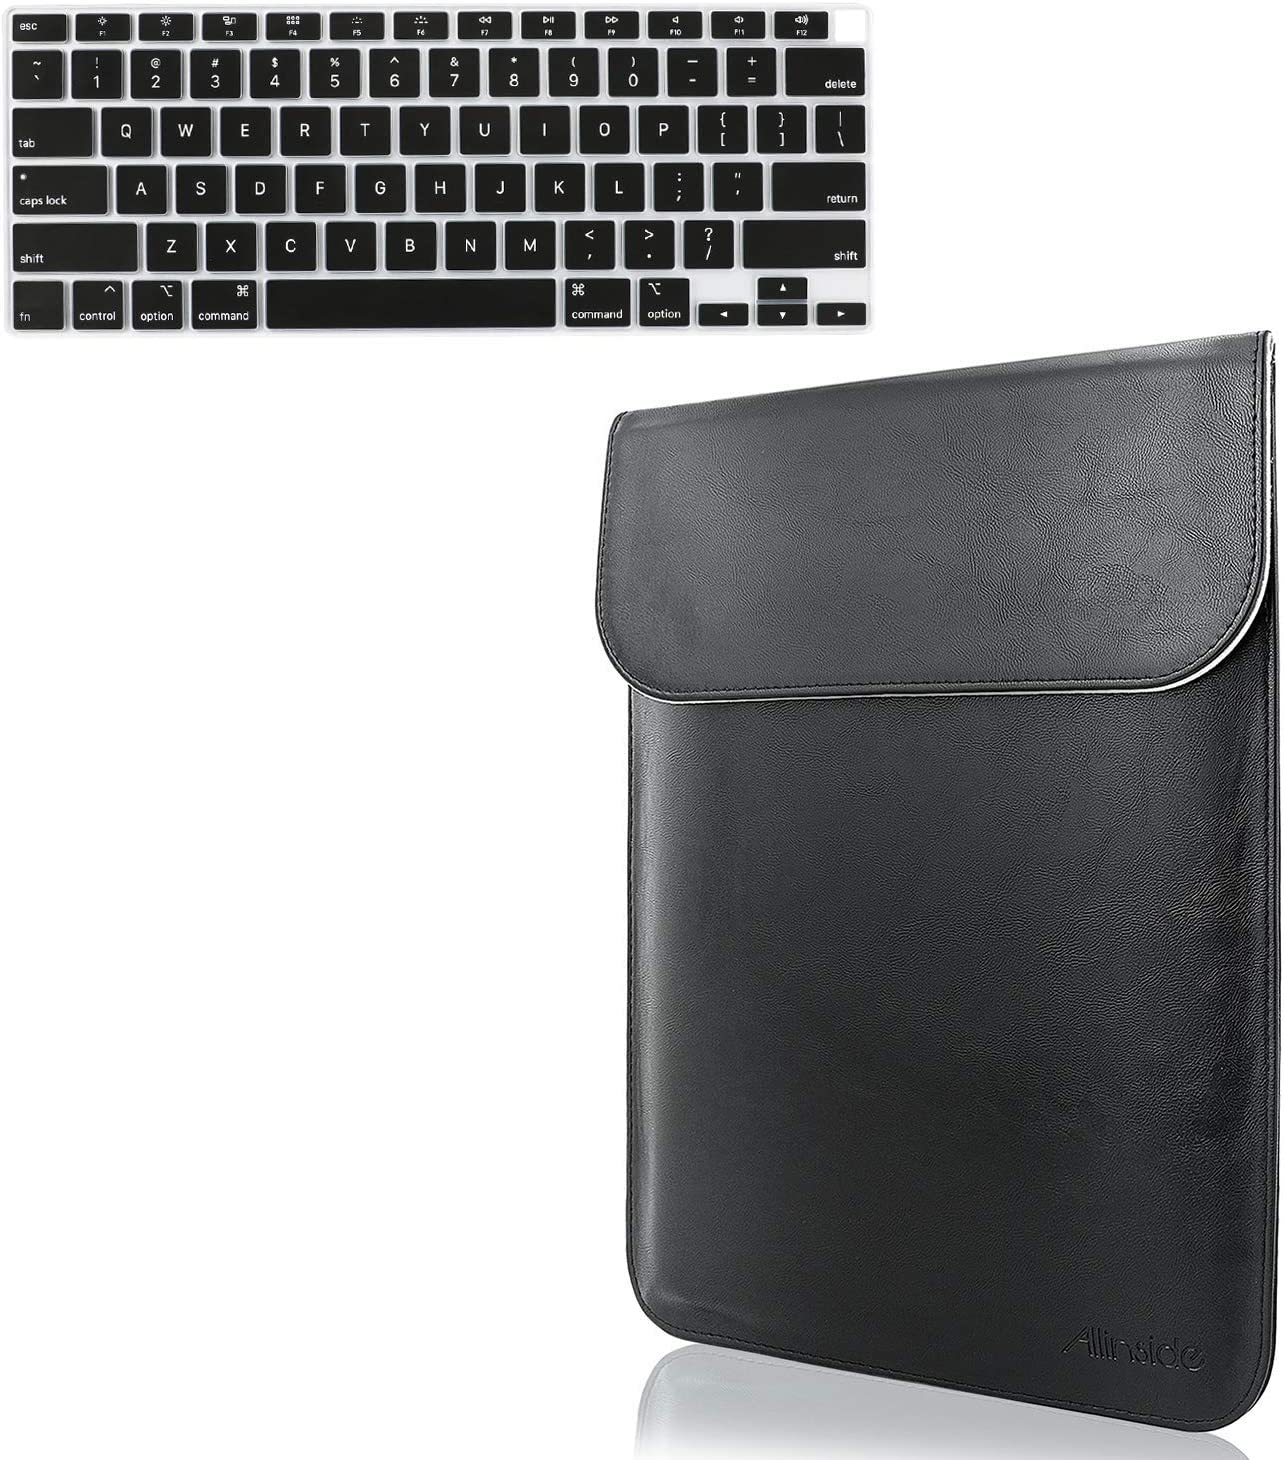 Allinside Laptop Sleeve and Keyboard Cover Skin Protector for 2020 MacBook Air 13 inch A2179 with Touch ID and Retina Display US Version, Black